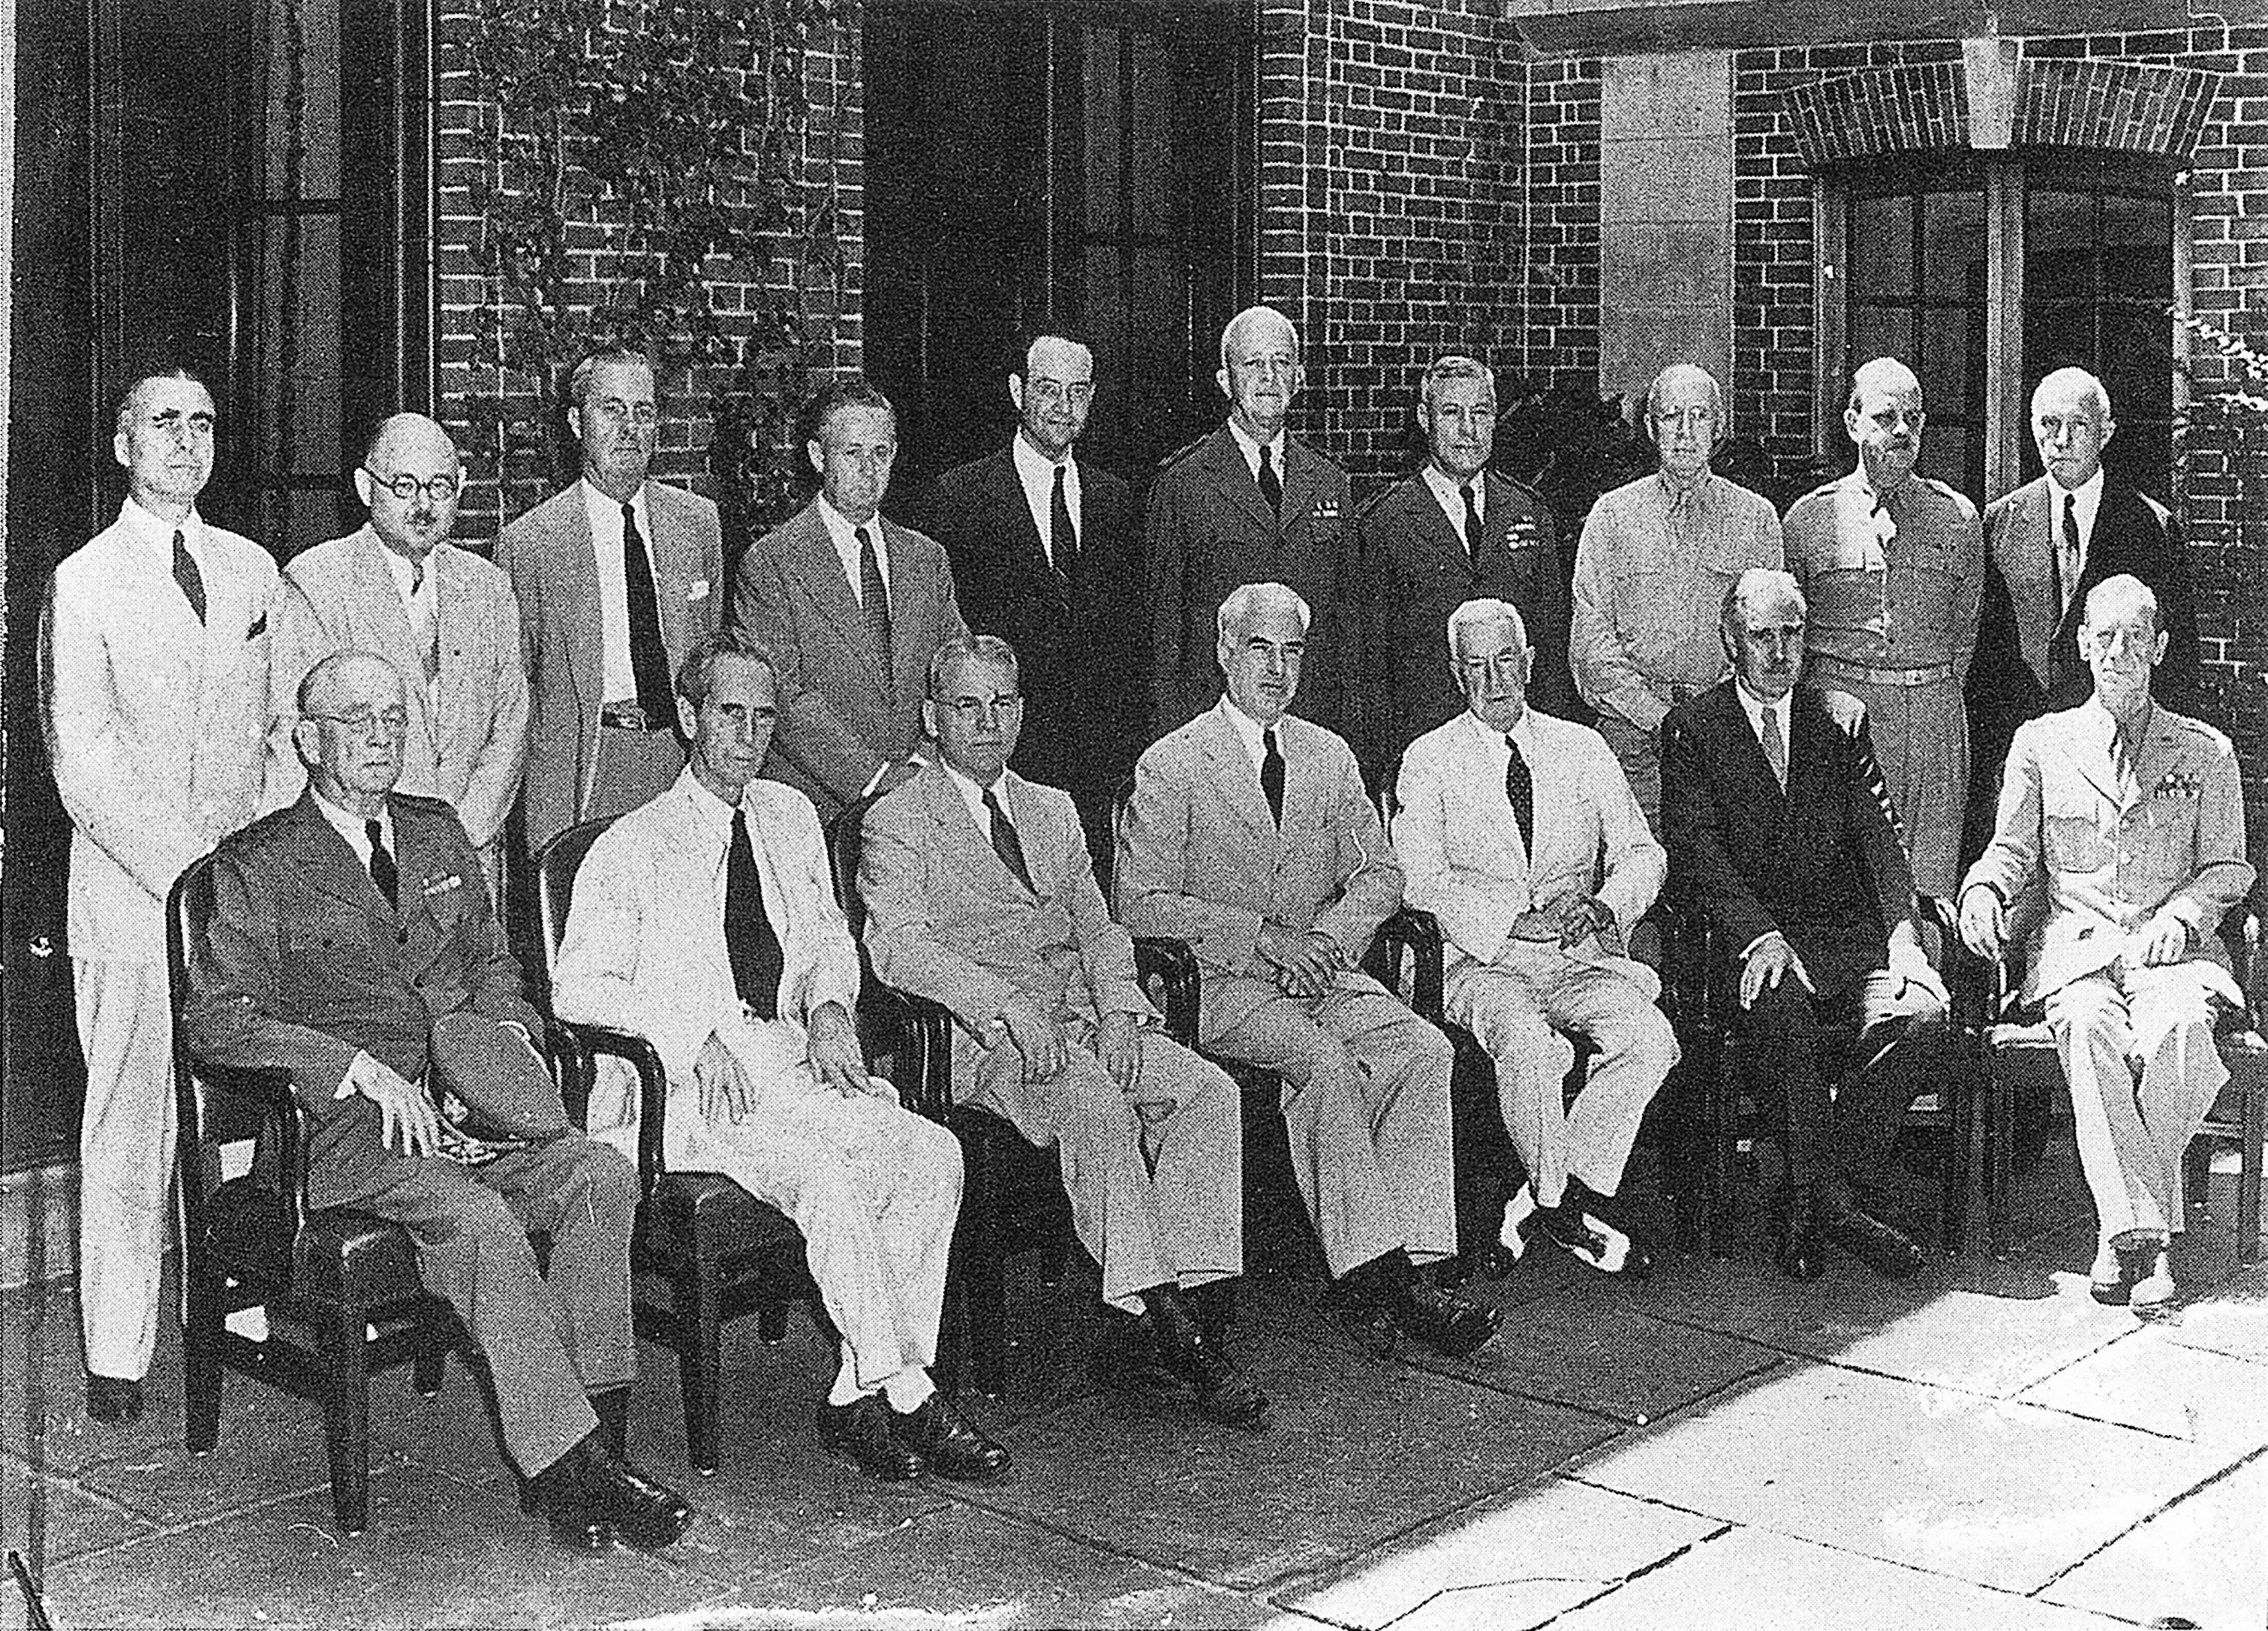 Members of the American delegation to the Dumbarton Oaks Conversations in front of the Music Room, 19 August 1944